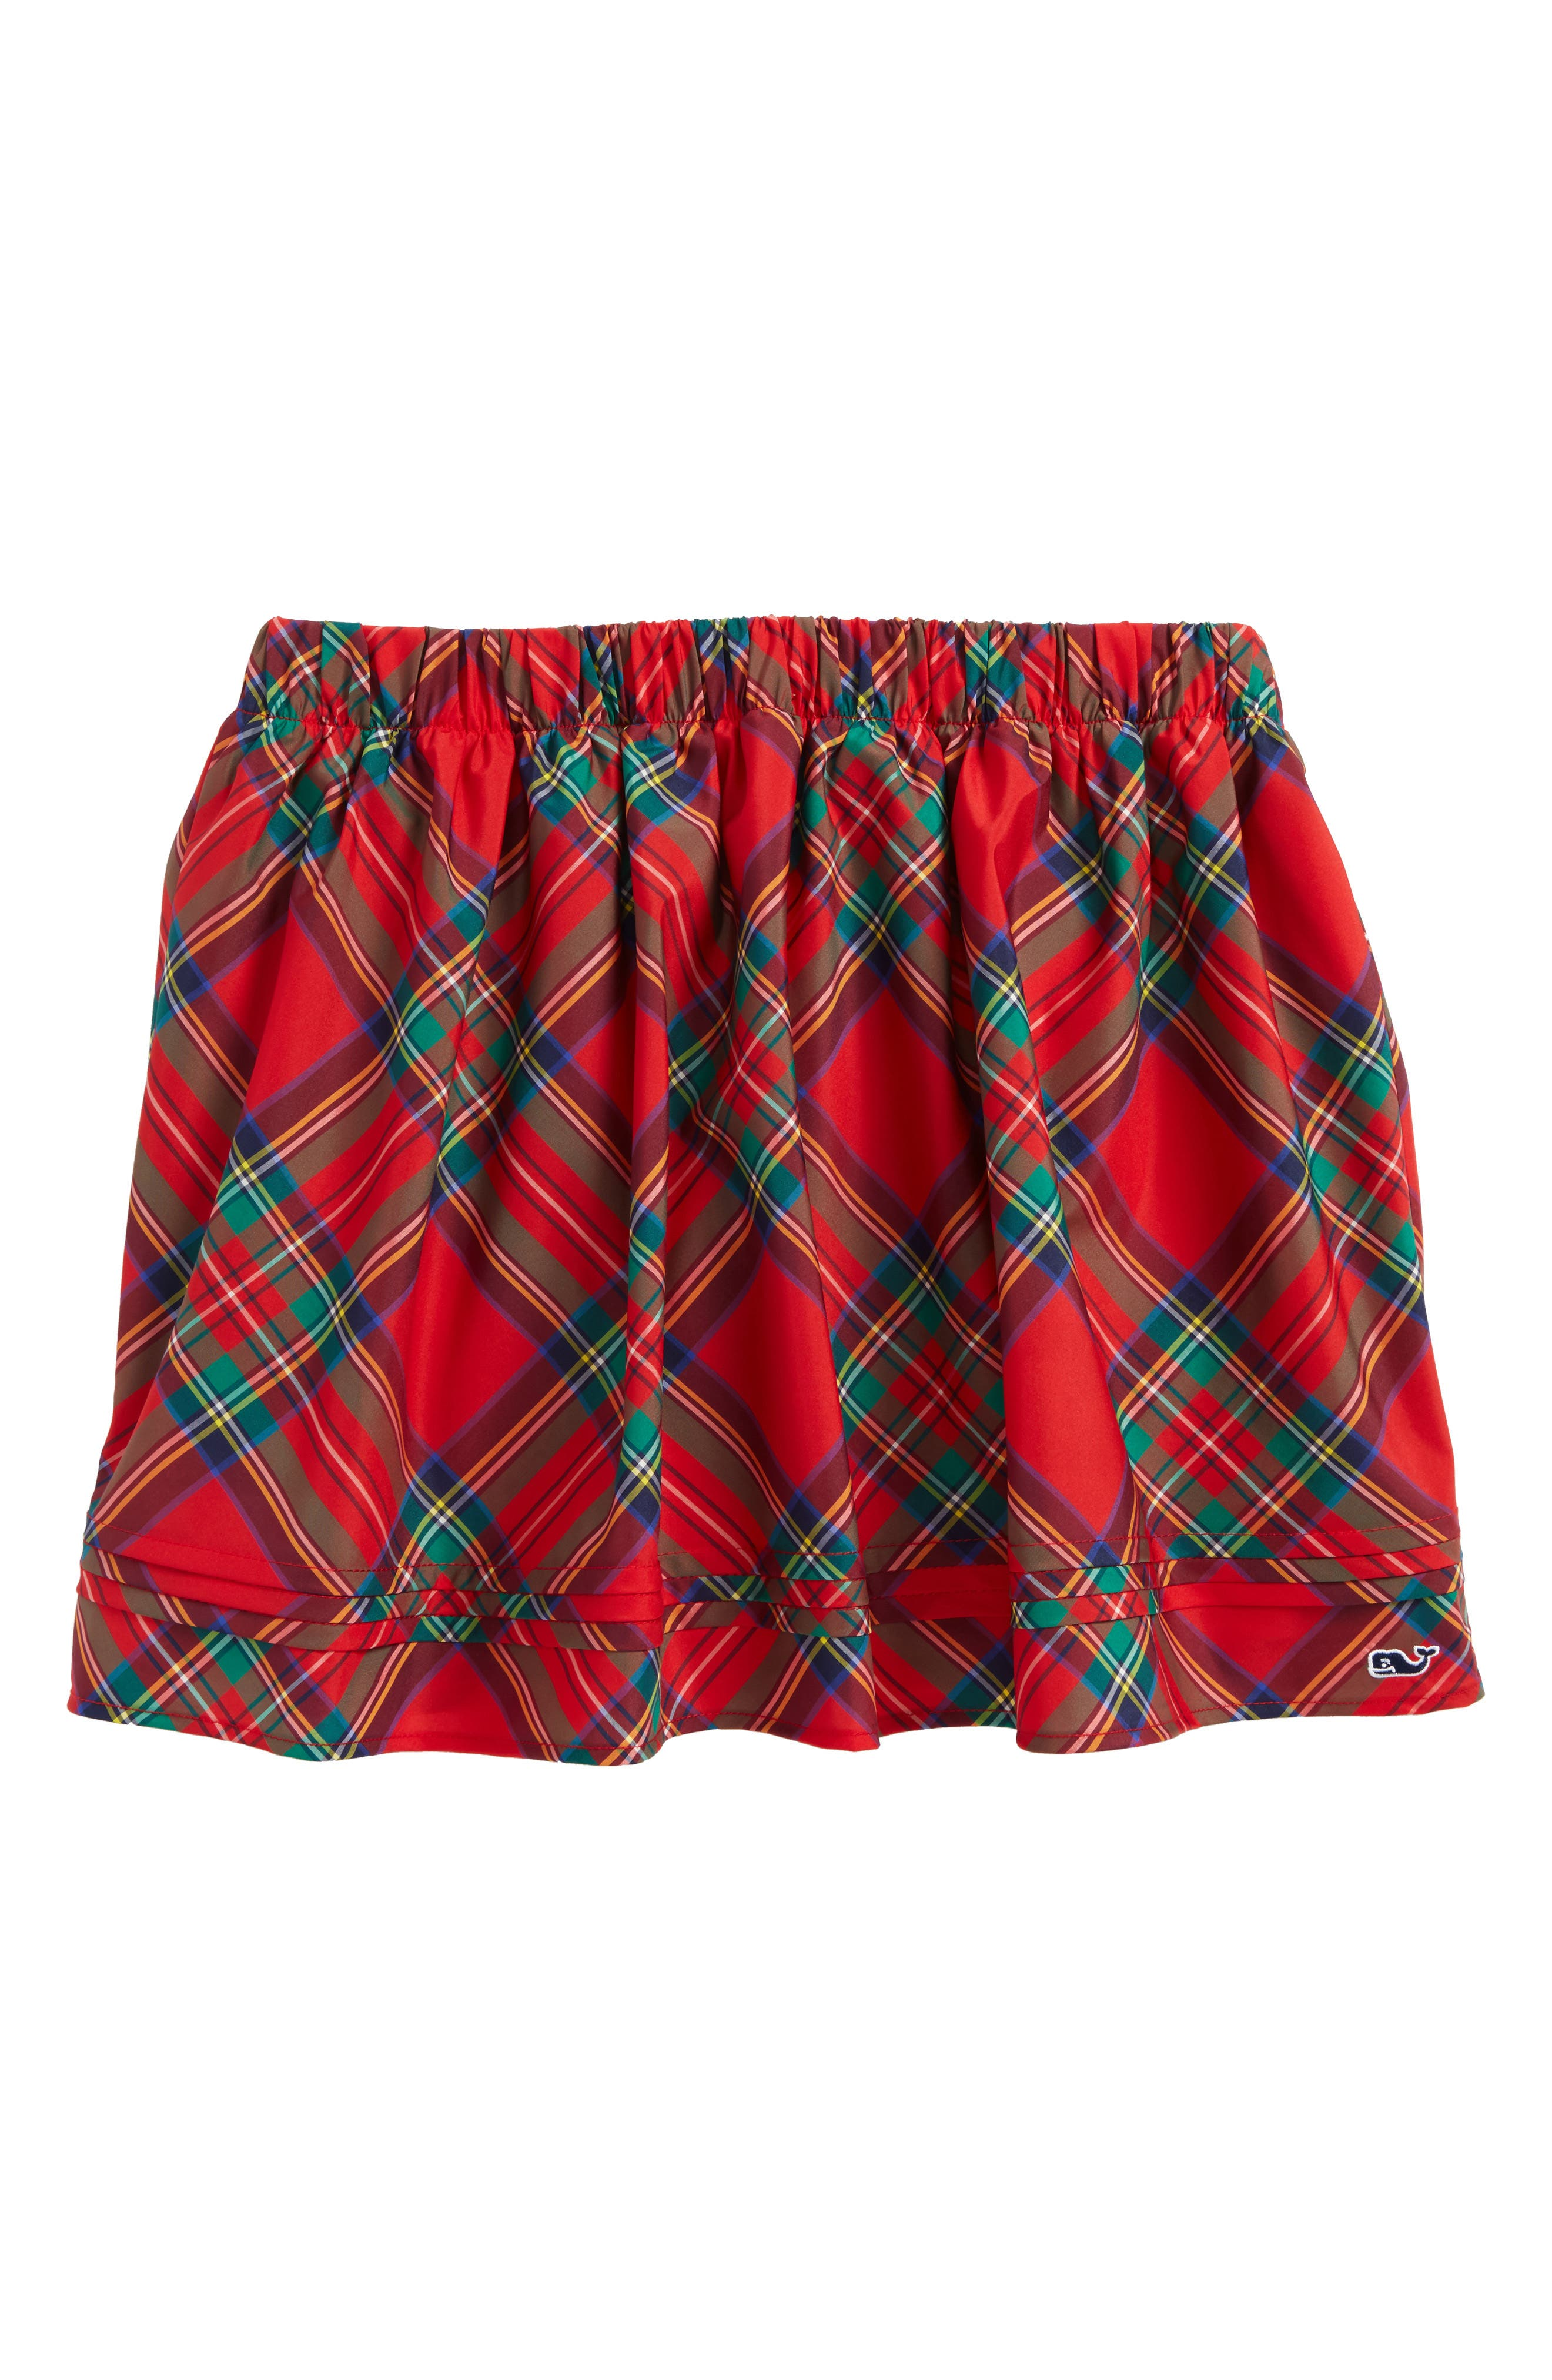 Jolly Plaid Party Skirt,                         Main,                         color, 634